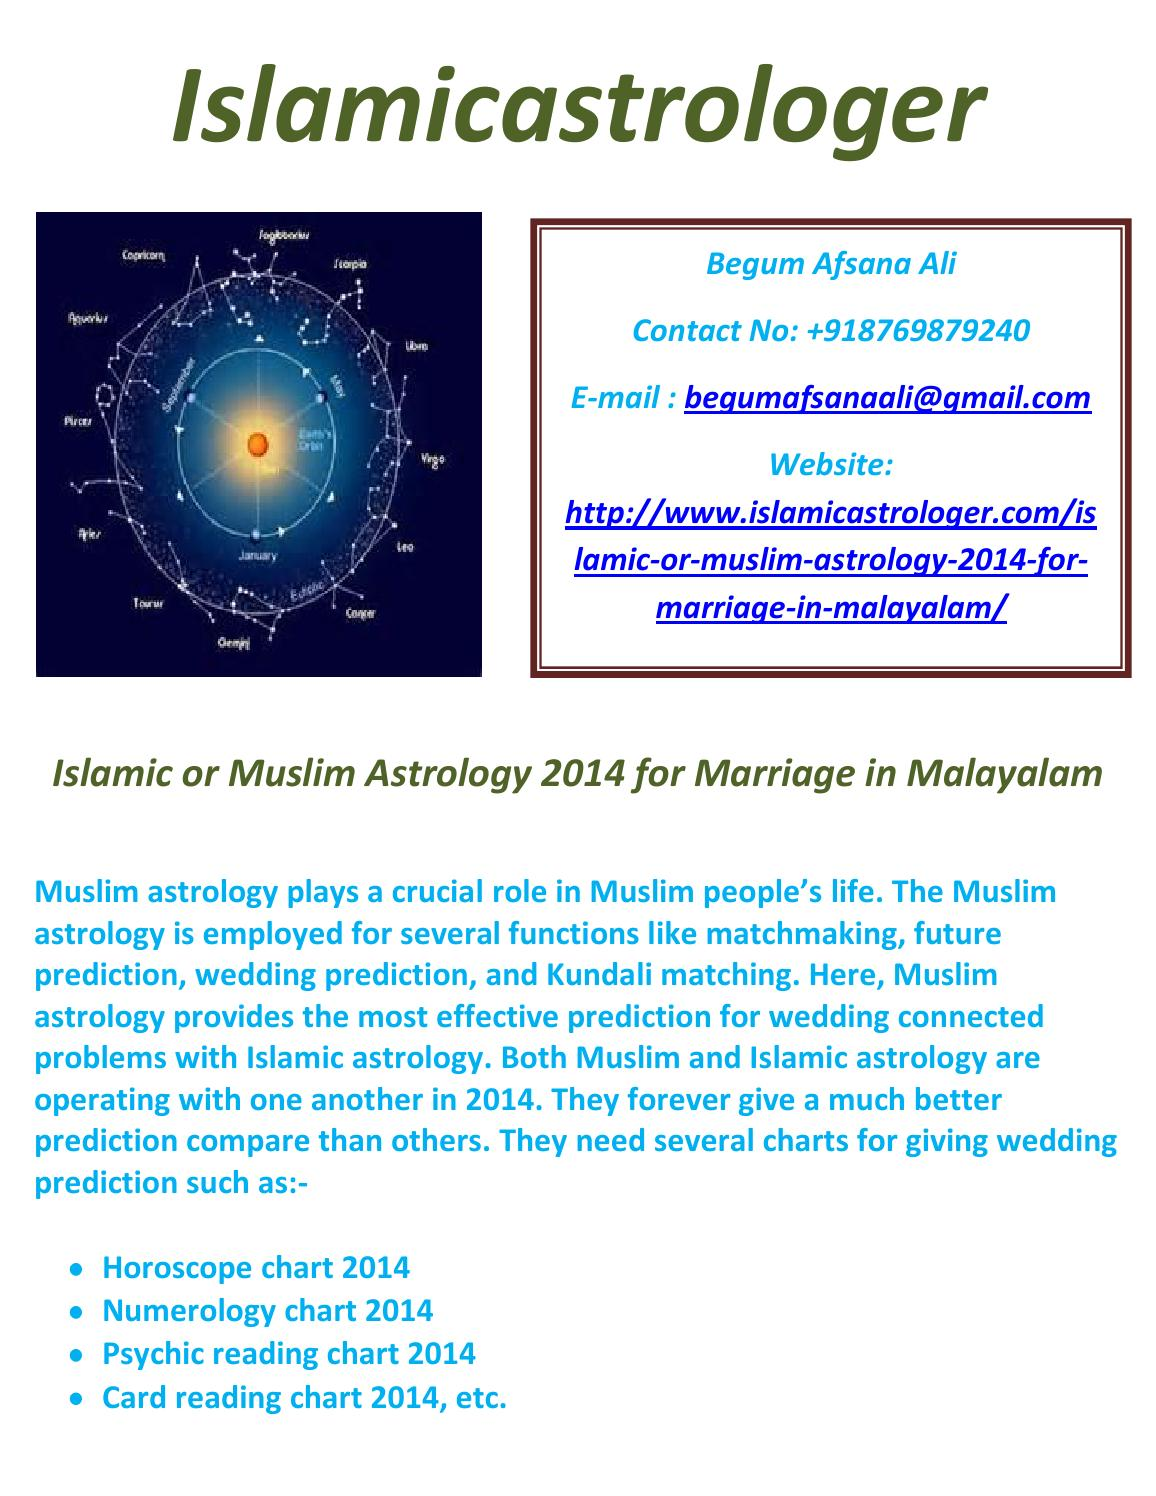 Islamic or muslim astrology 2014 for marriage in malayalam by astro islamic or muslim astrology 2014 for marriage in malayalam by astro guru issuu geenschuldenfo Choice Image